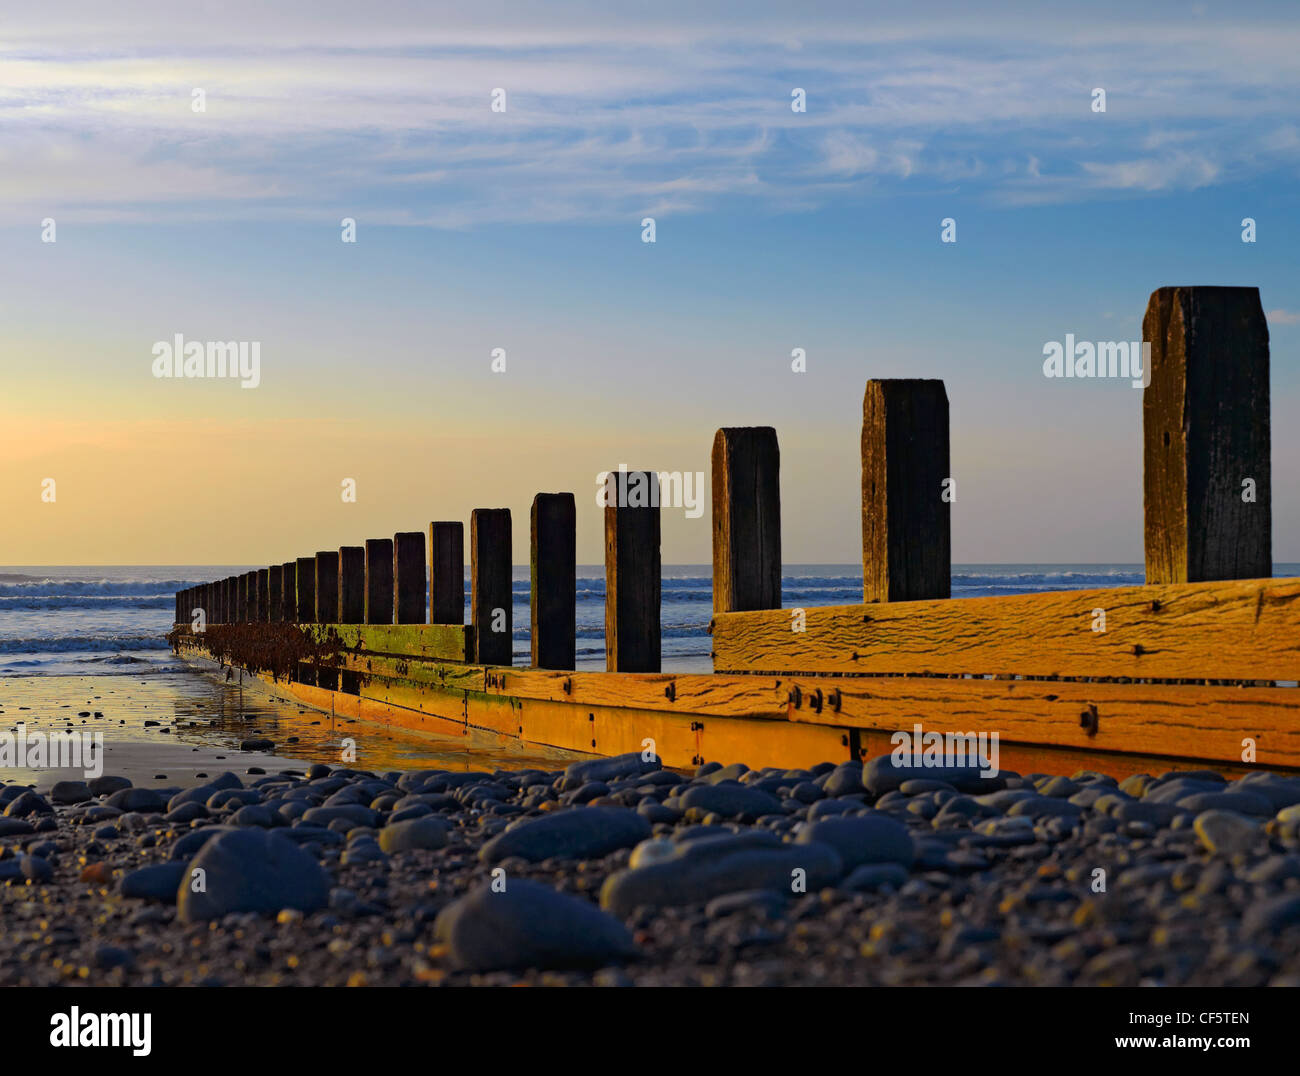 View along a groyne out to the Irish Sea on the beach at Borth at dusk. - Stock Image